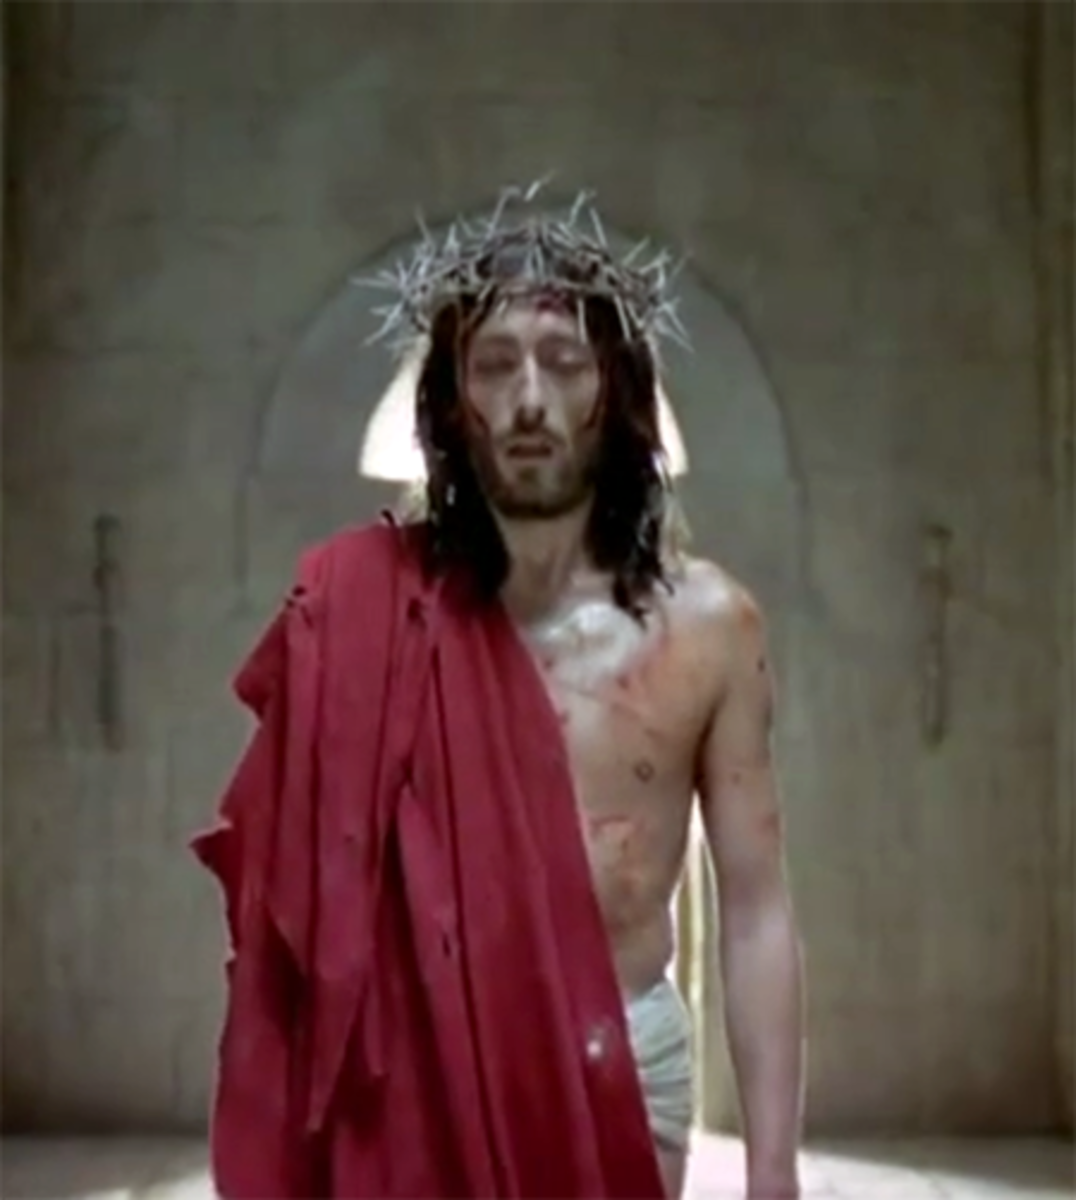 A Sad Story About the Crucifixion of a True Messiah